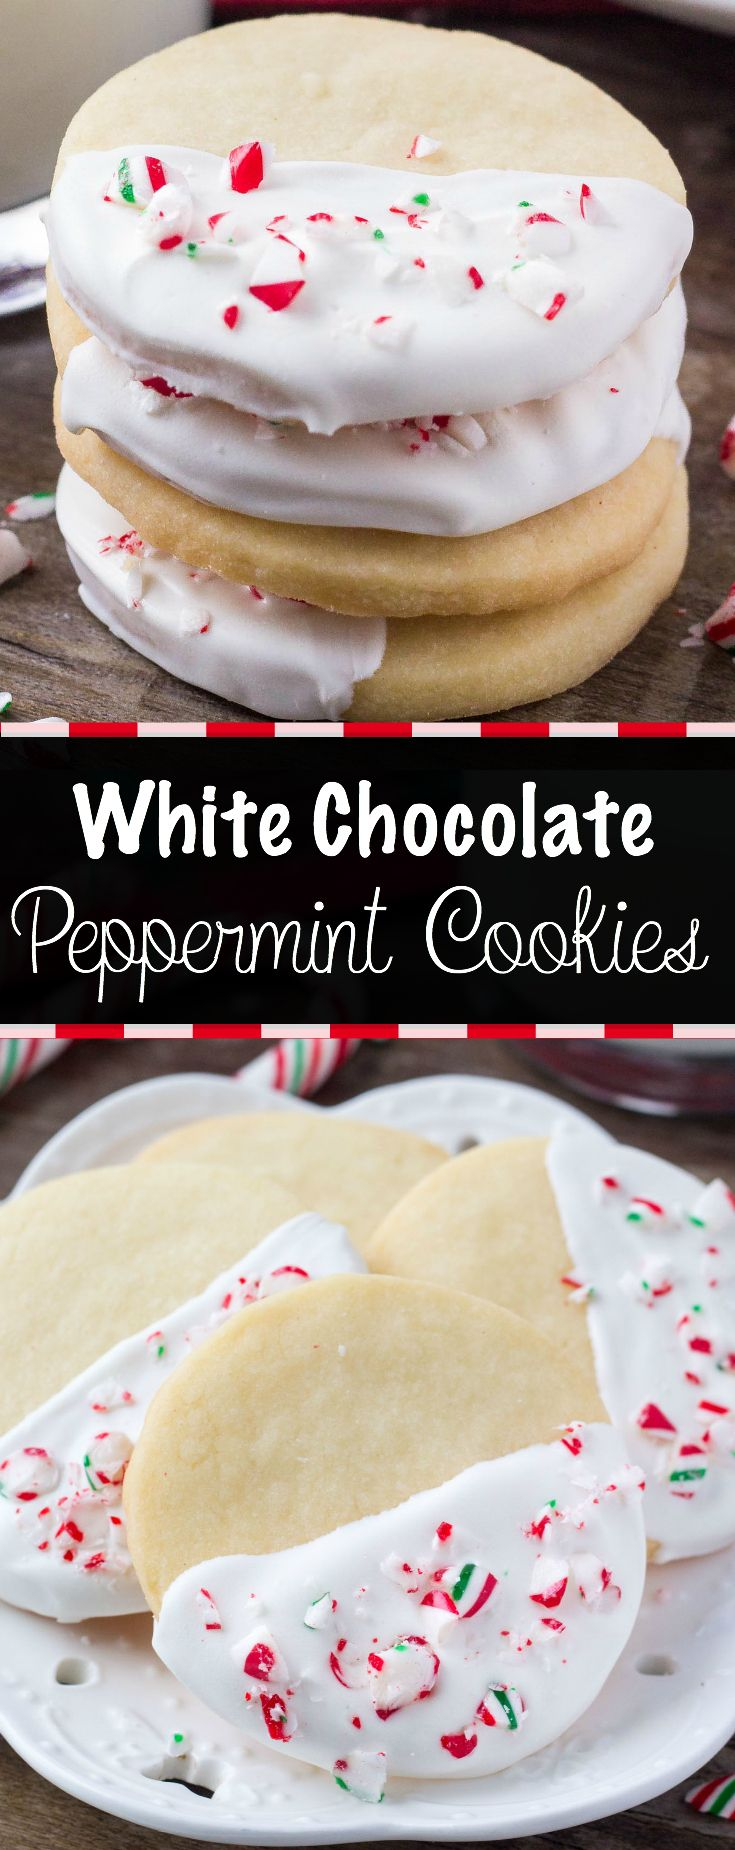 Buttery, melt in your mouth shortbread cookies infused with peppermint then dipped in chocolate and sprinkled with crushed candy canes. These white chocolate peppermint shortbread cookies are perfect for Christmas! via @ohsweetbasil